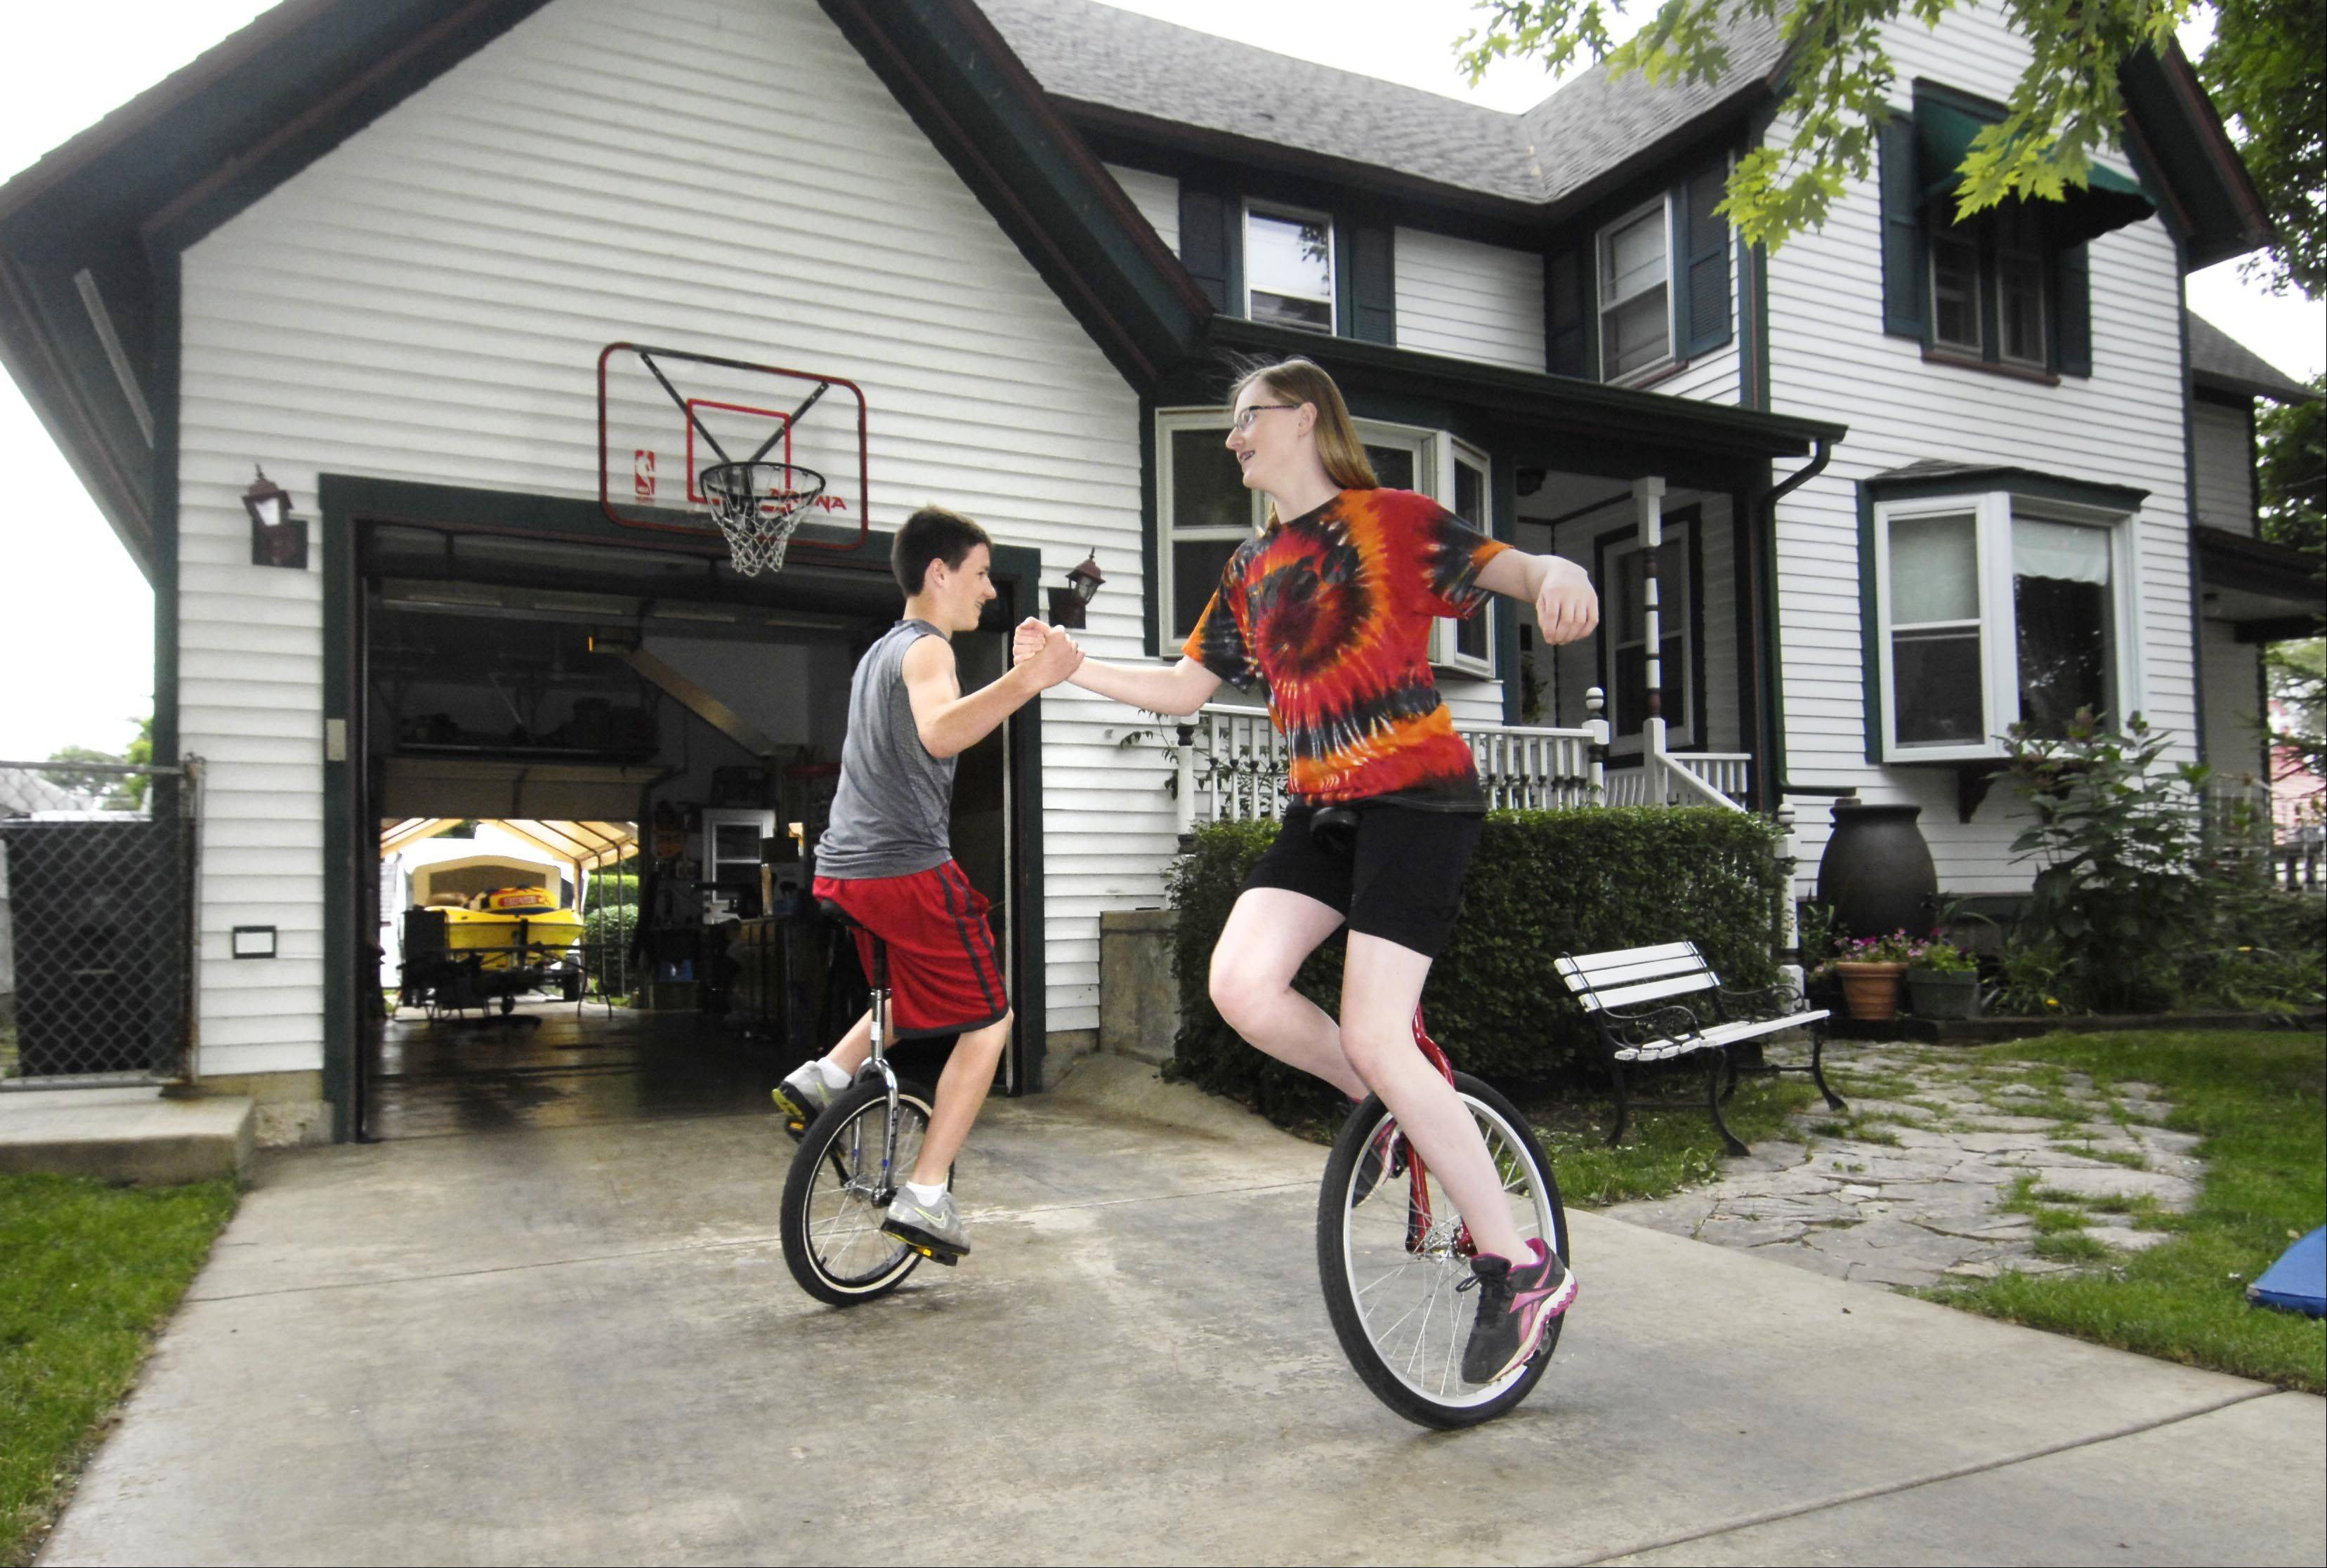 Katy Balk, 16, and her brother Nick, 14, practice a unicycle maneuver in their South Elgin driveway Tuesday afternoon. They are trying to get in shape for a two-week circus camp in Bloomington later this month.